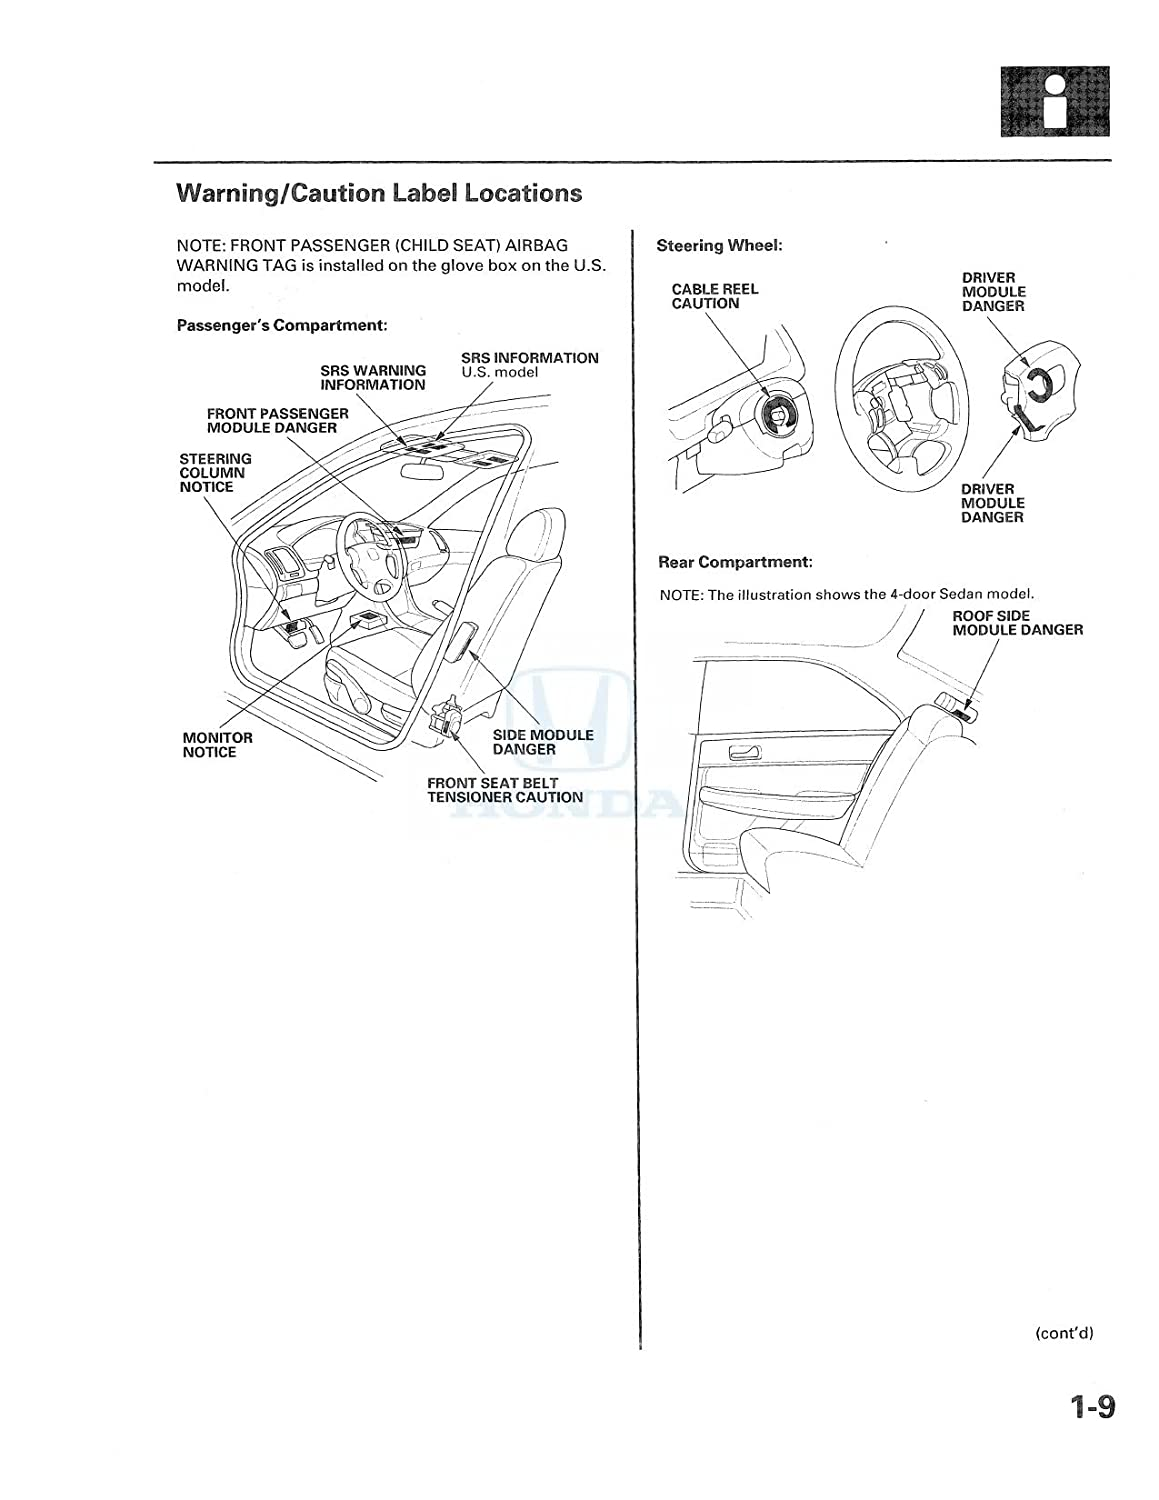 Fire Engine Drivetrain Diagram 2003 2004 2005 Honda Accord Shop Service Repair Manual Book Automotive